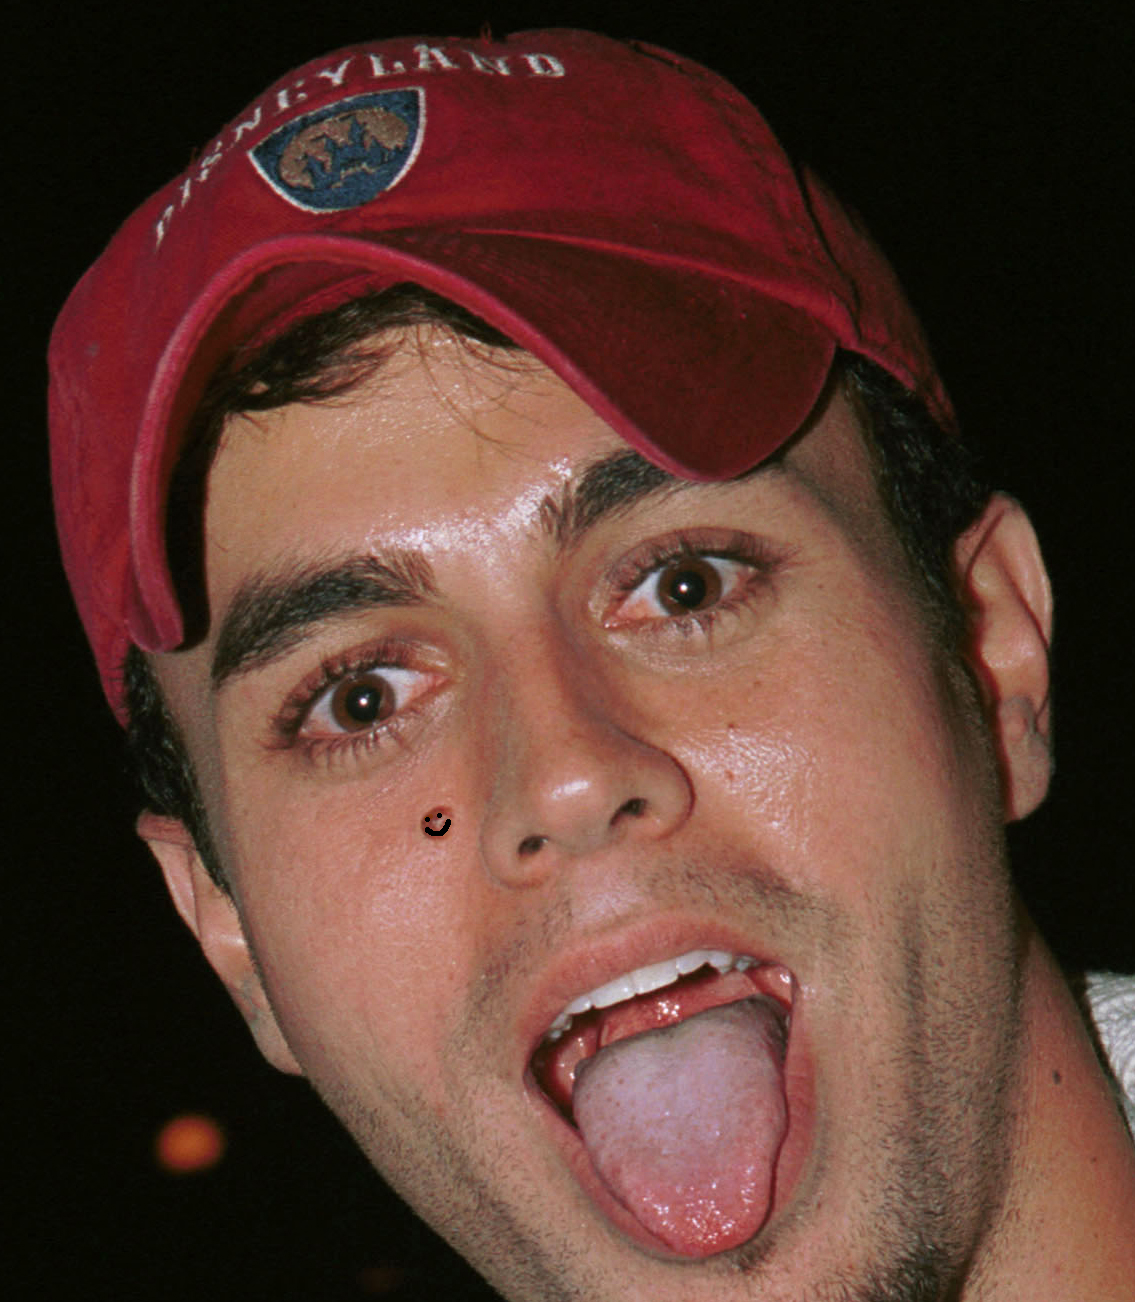 396891 04: Singer Enrique Iglesias poses outside Grand Ville nightclub November 3, 2001 in West Hollywood, CA. (Photo by David Klein/Getty Images)